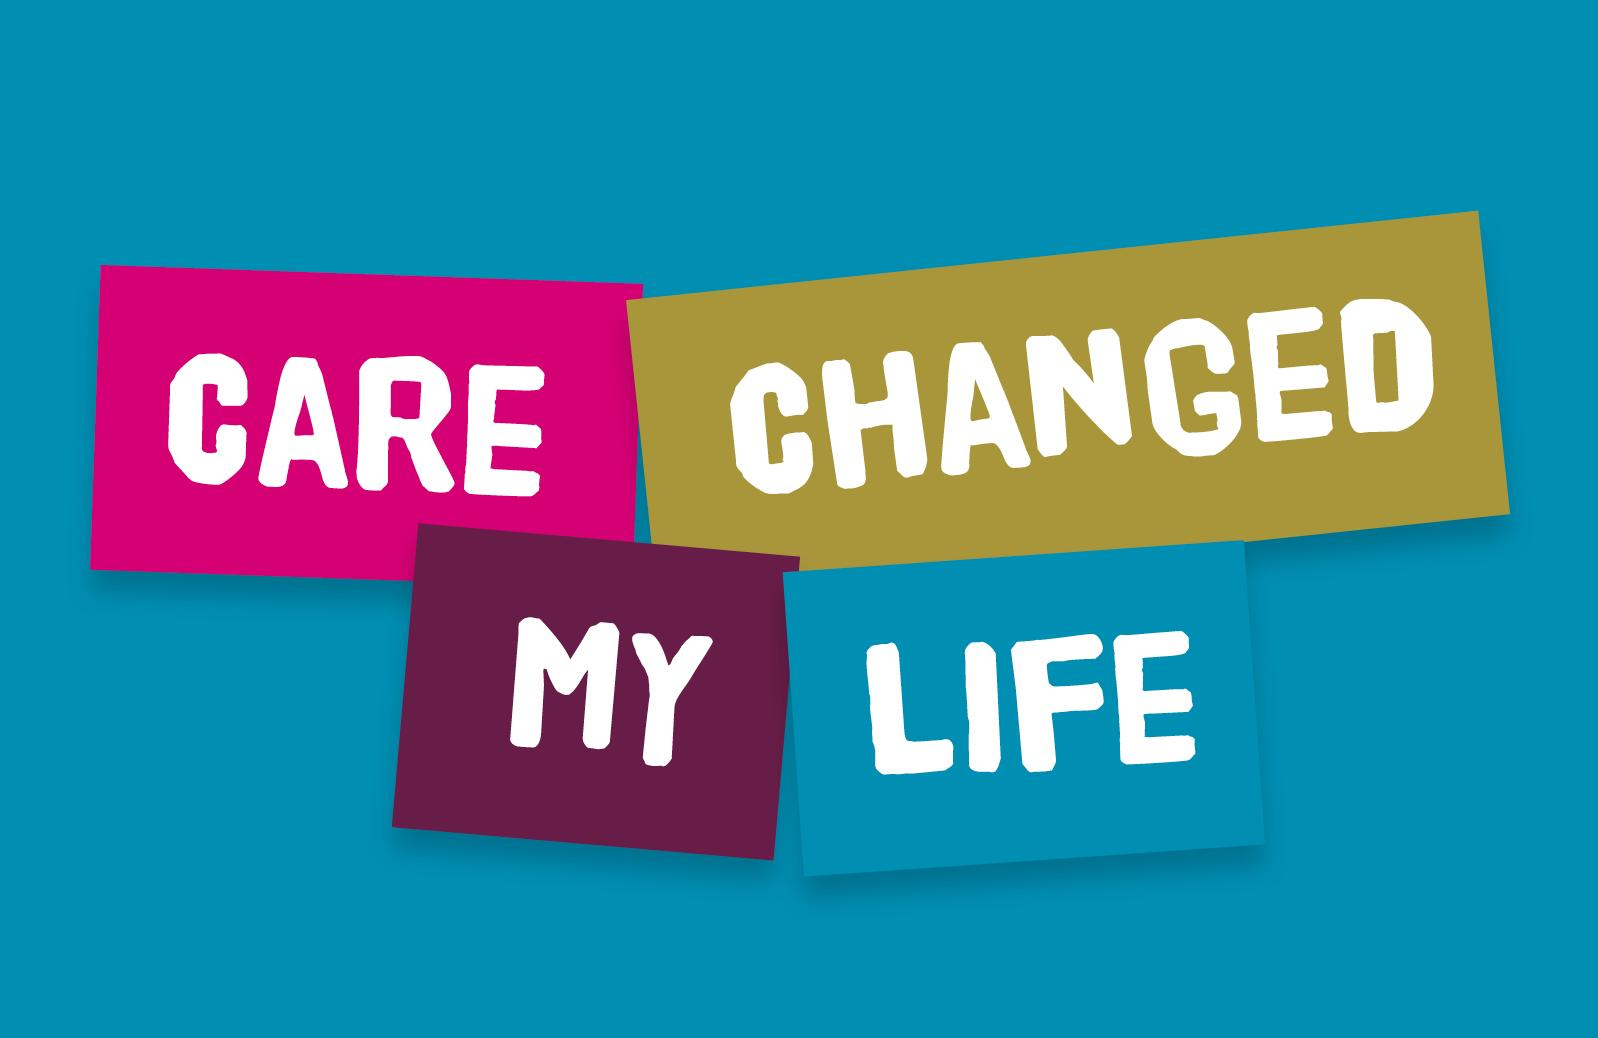 A role in care as a carer can change your life